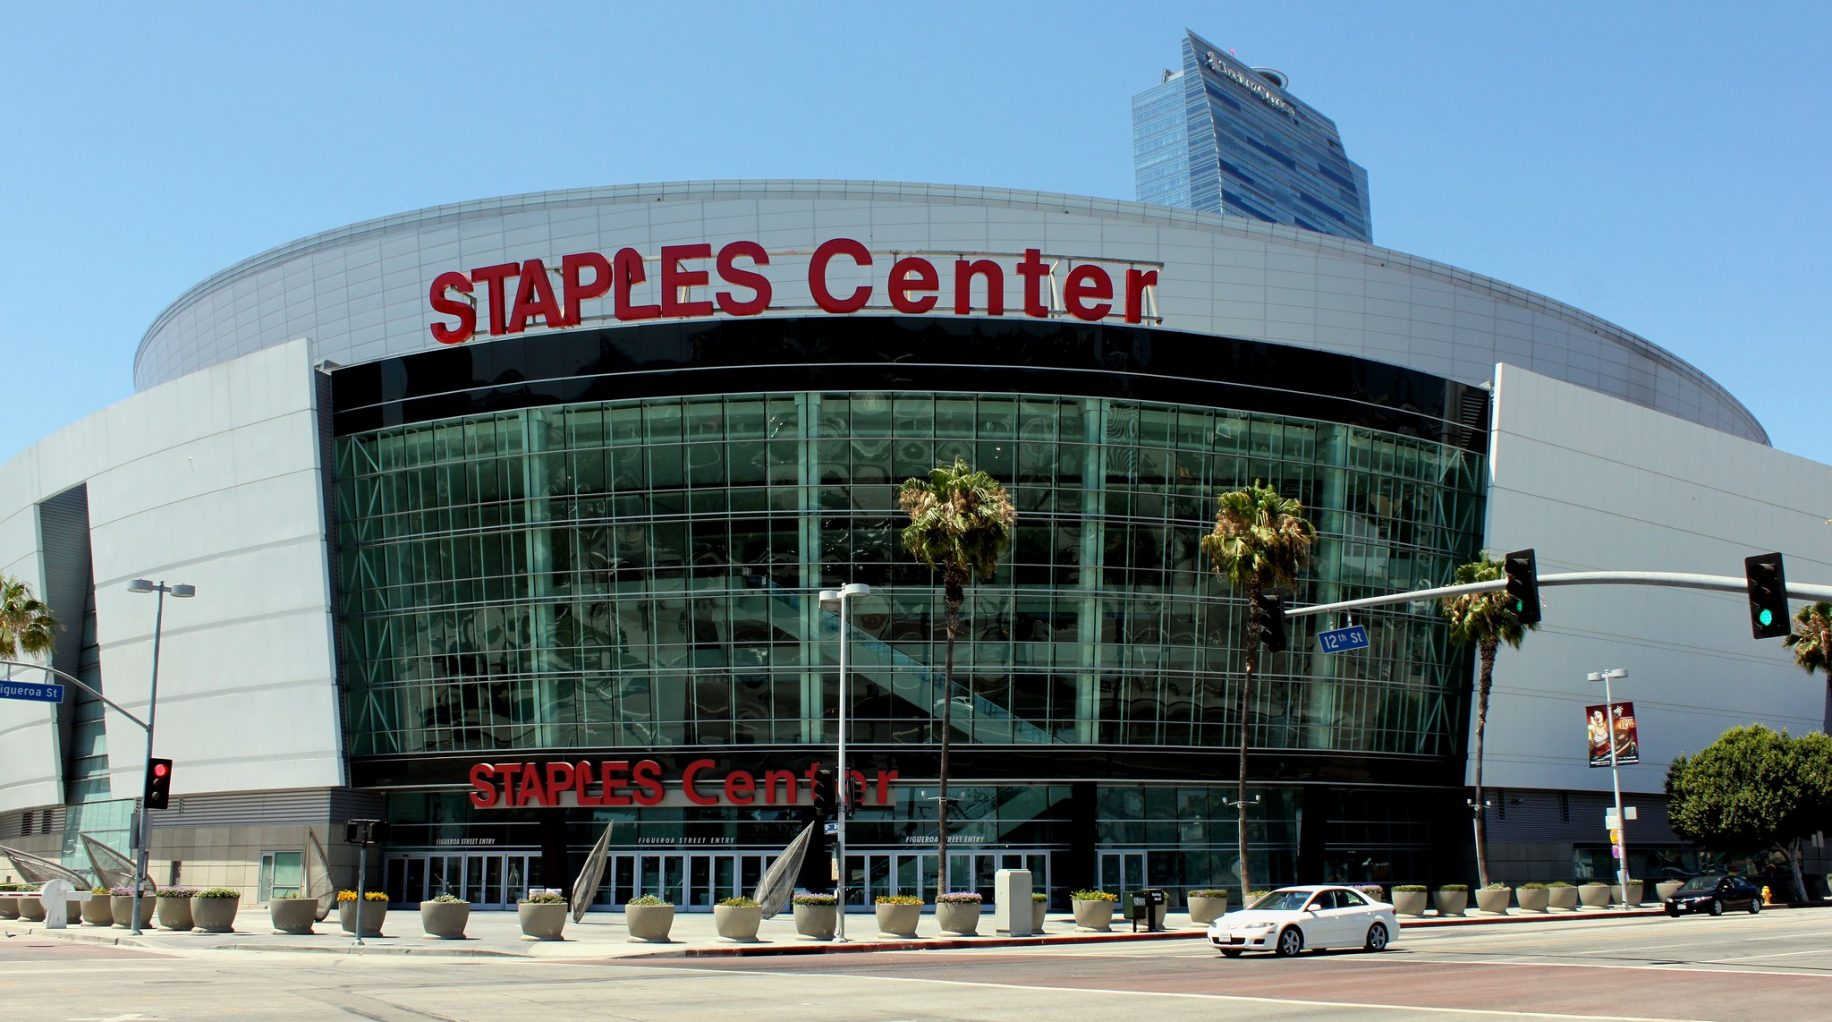 Staples Center In Los Angeles. Photo Credit: Prayitno | Under Creative Commons License